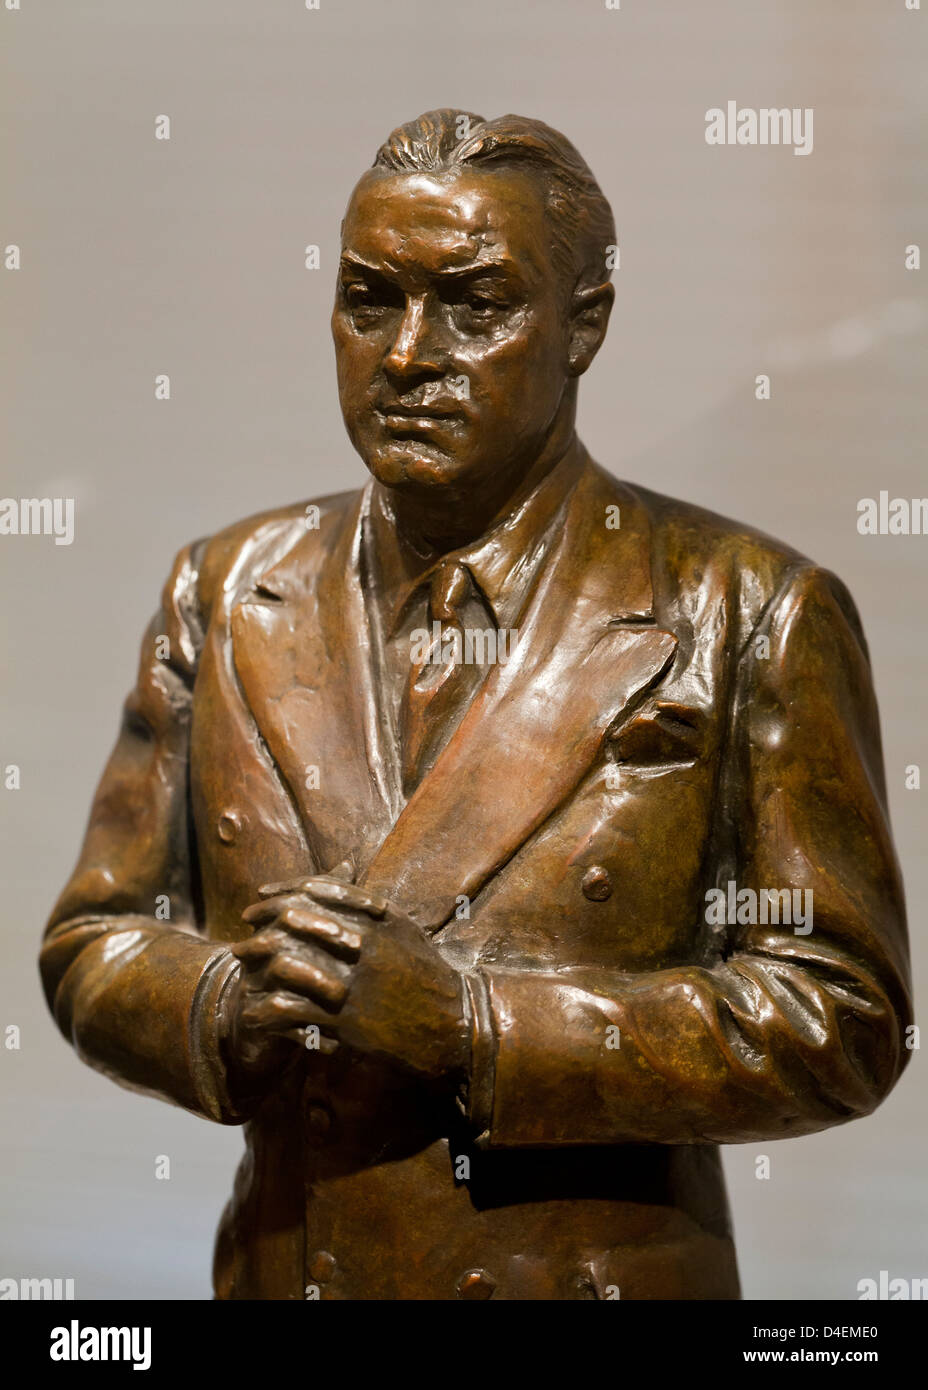 Sculpture of Bob Hope - Stock Image